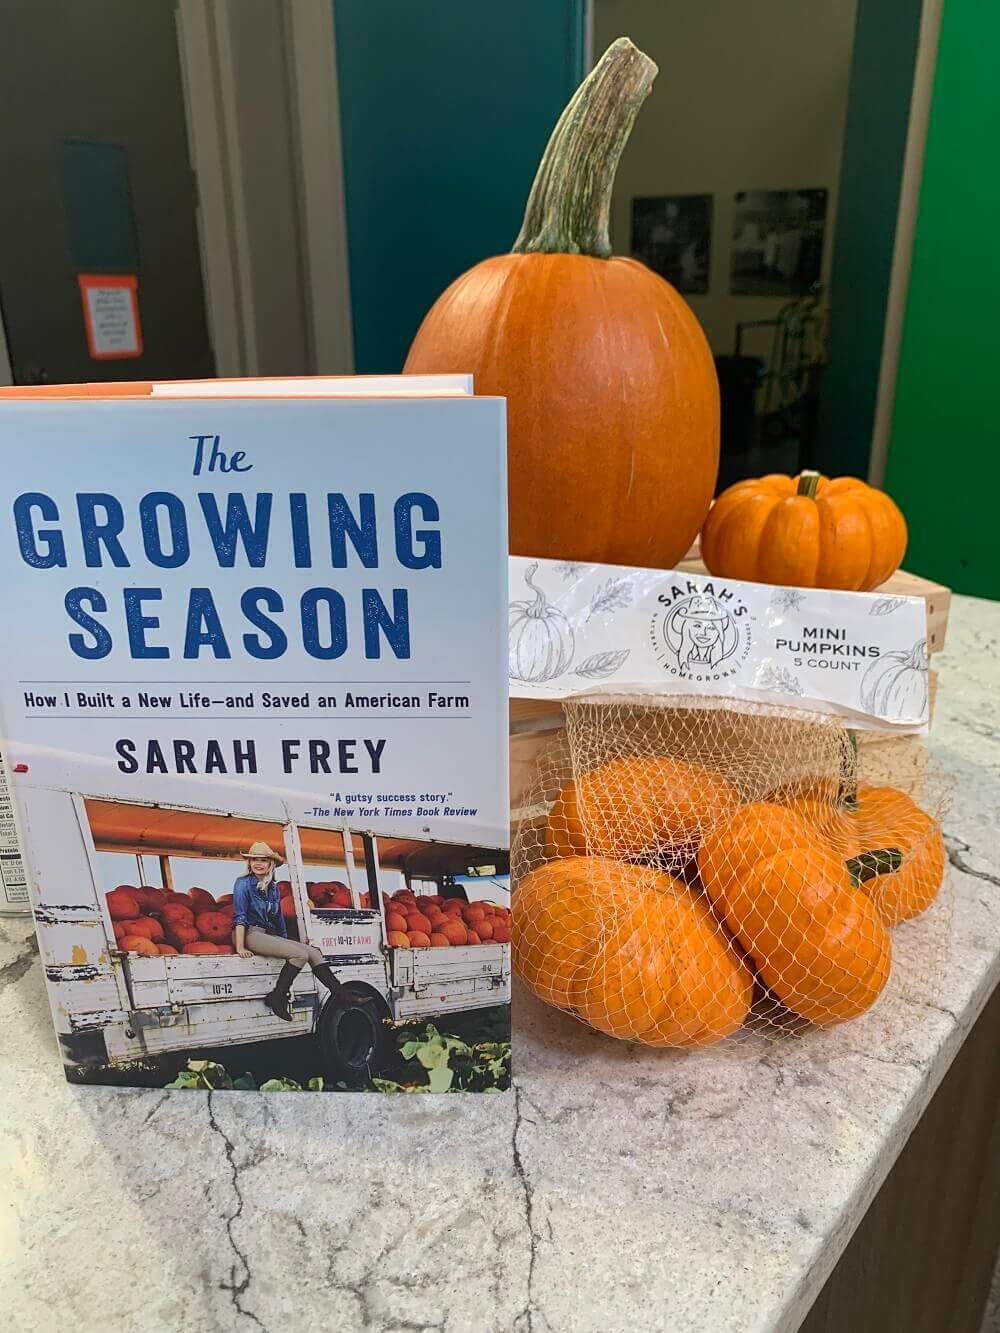 The Growing Season on Indy Style